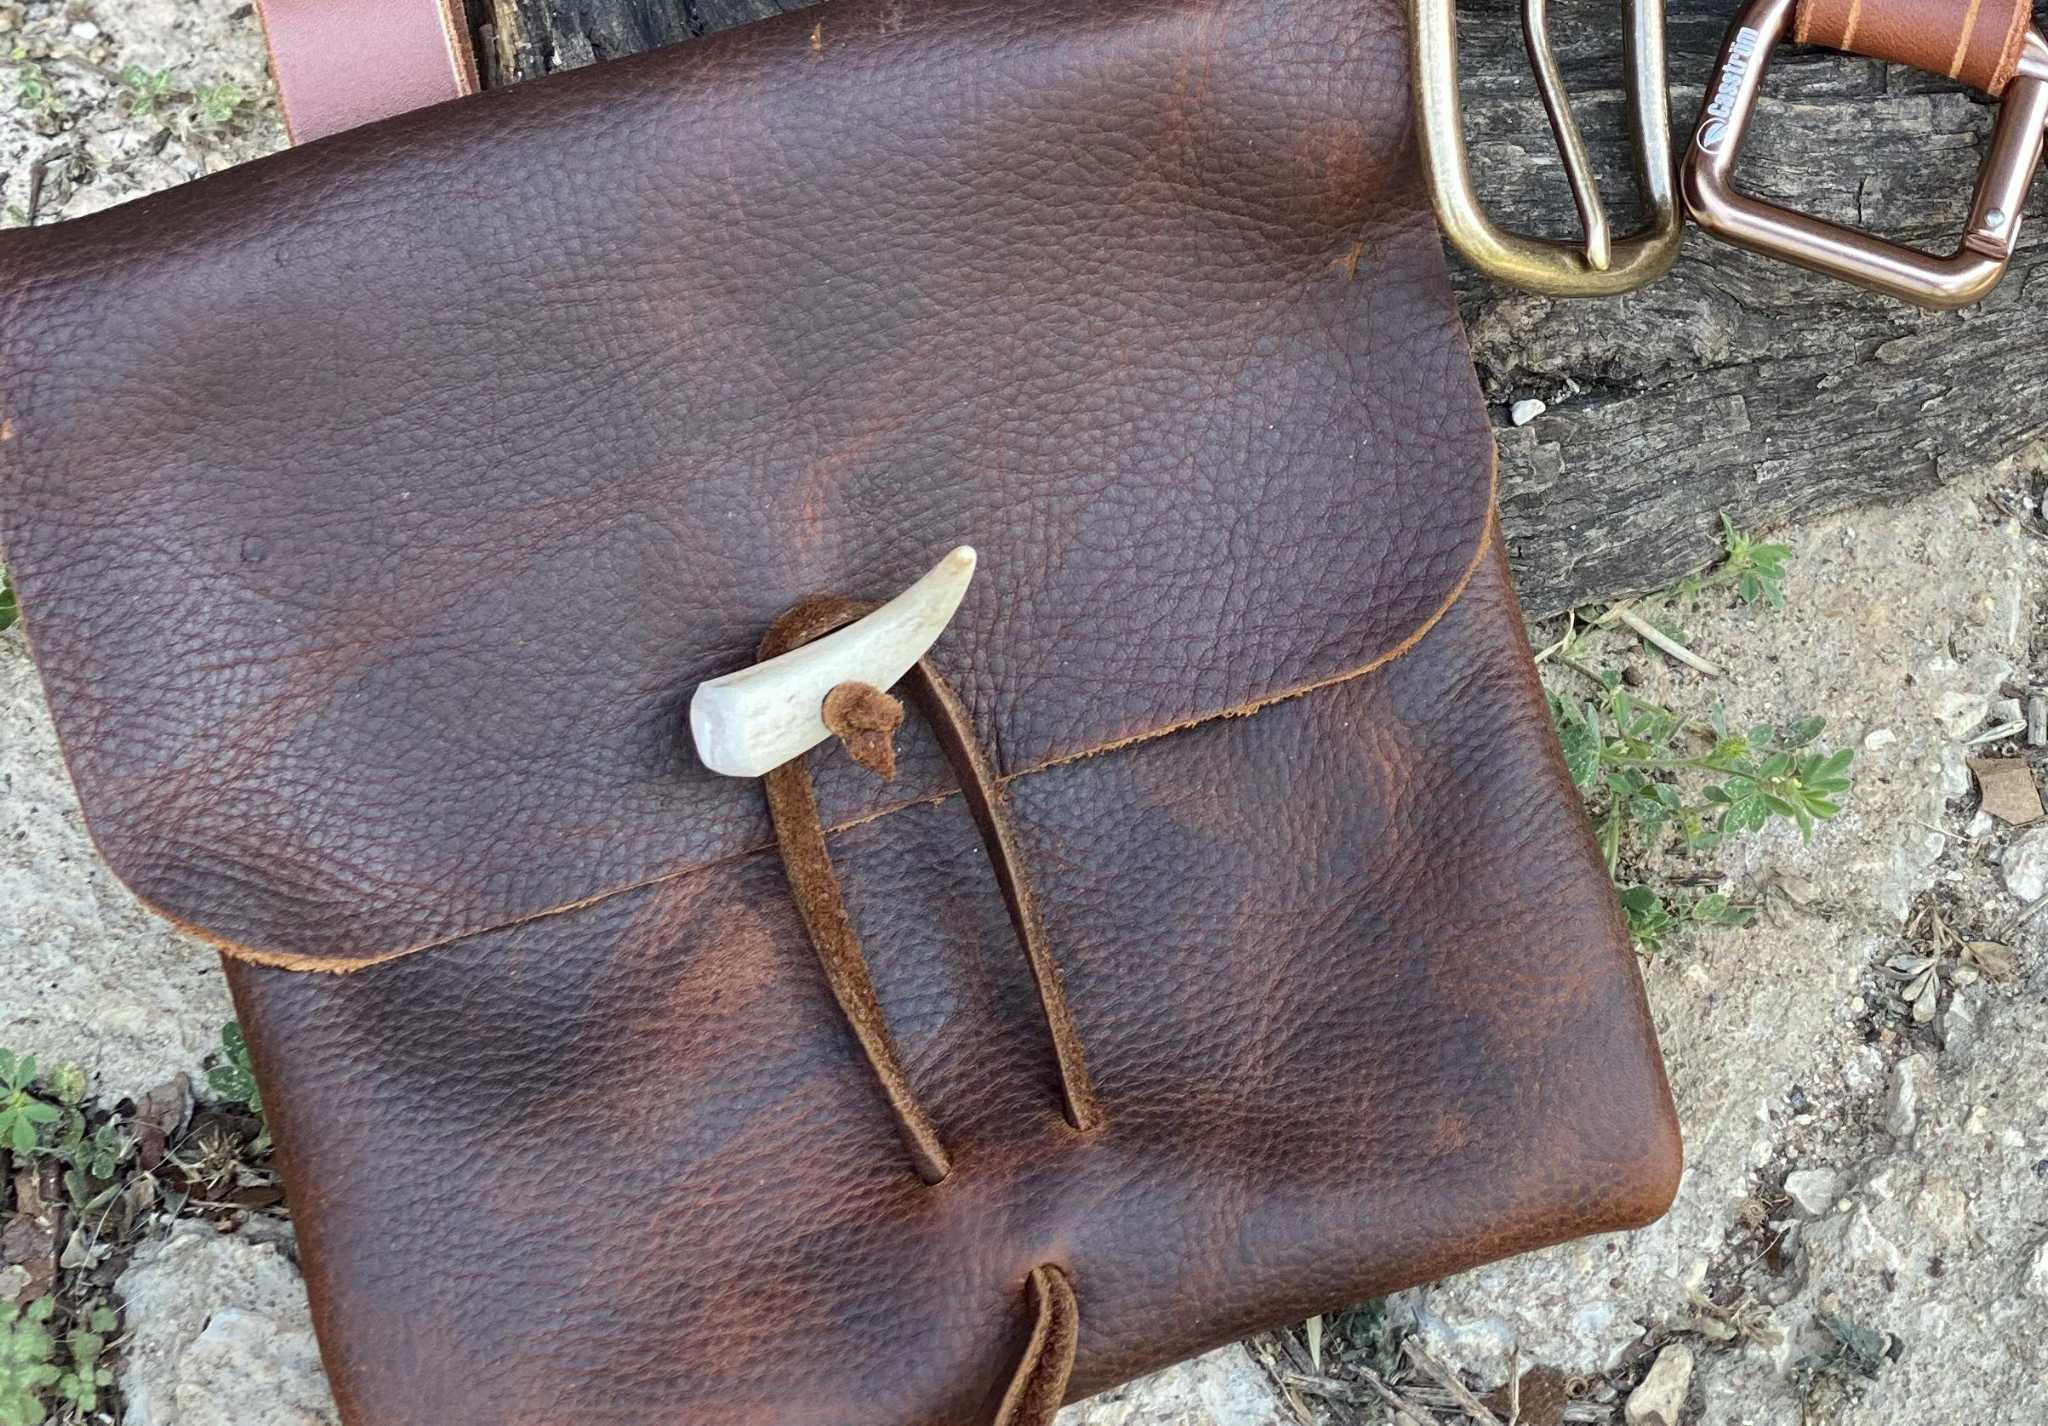 Cool, handmade leather goods made in San Antonio area